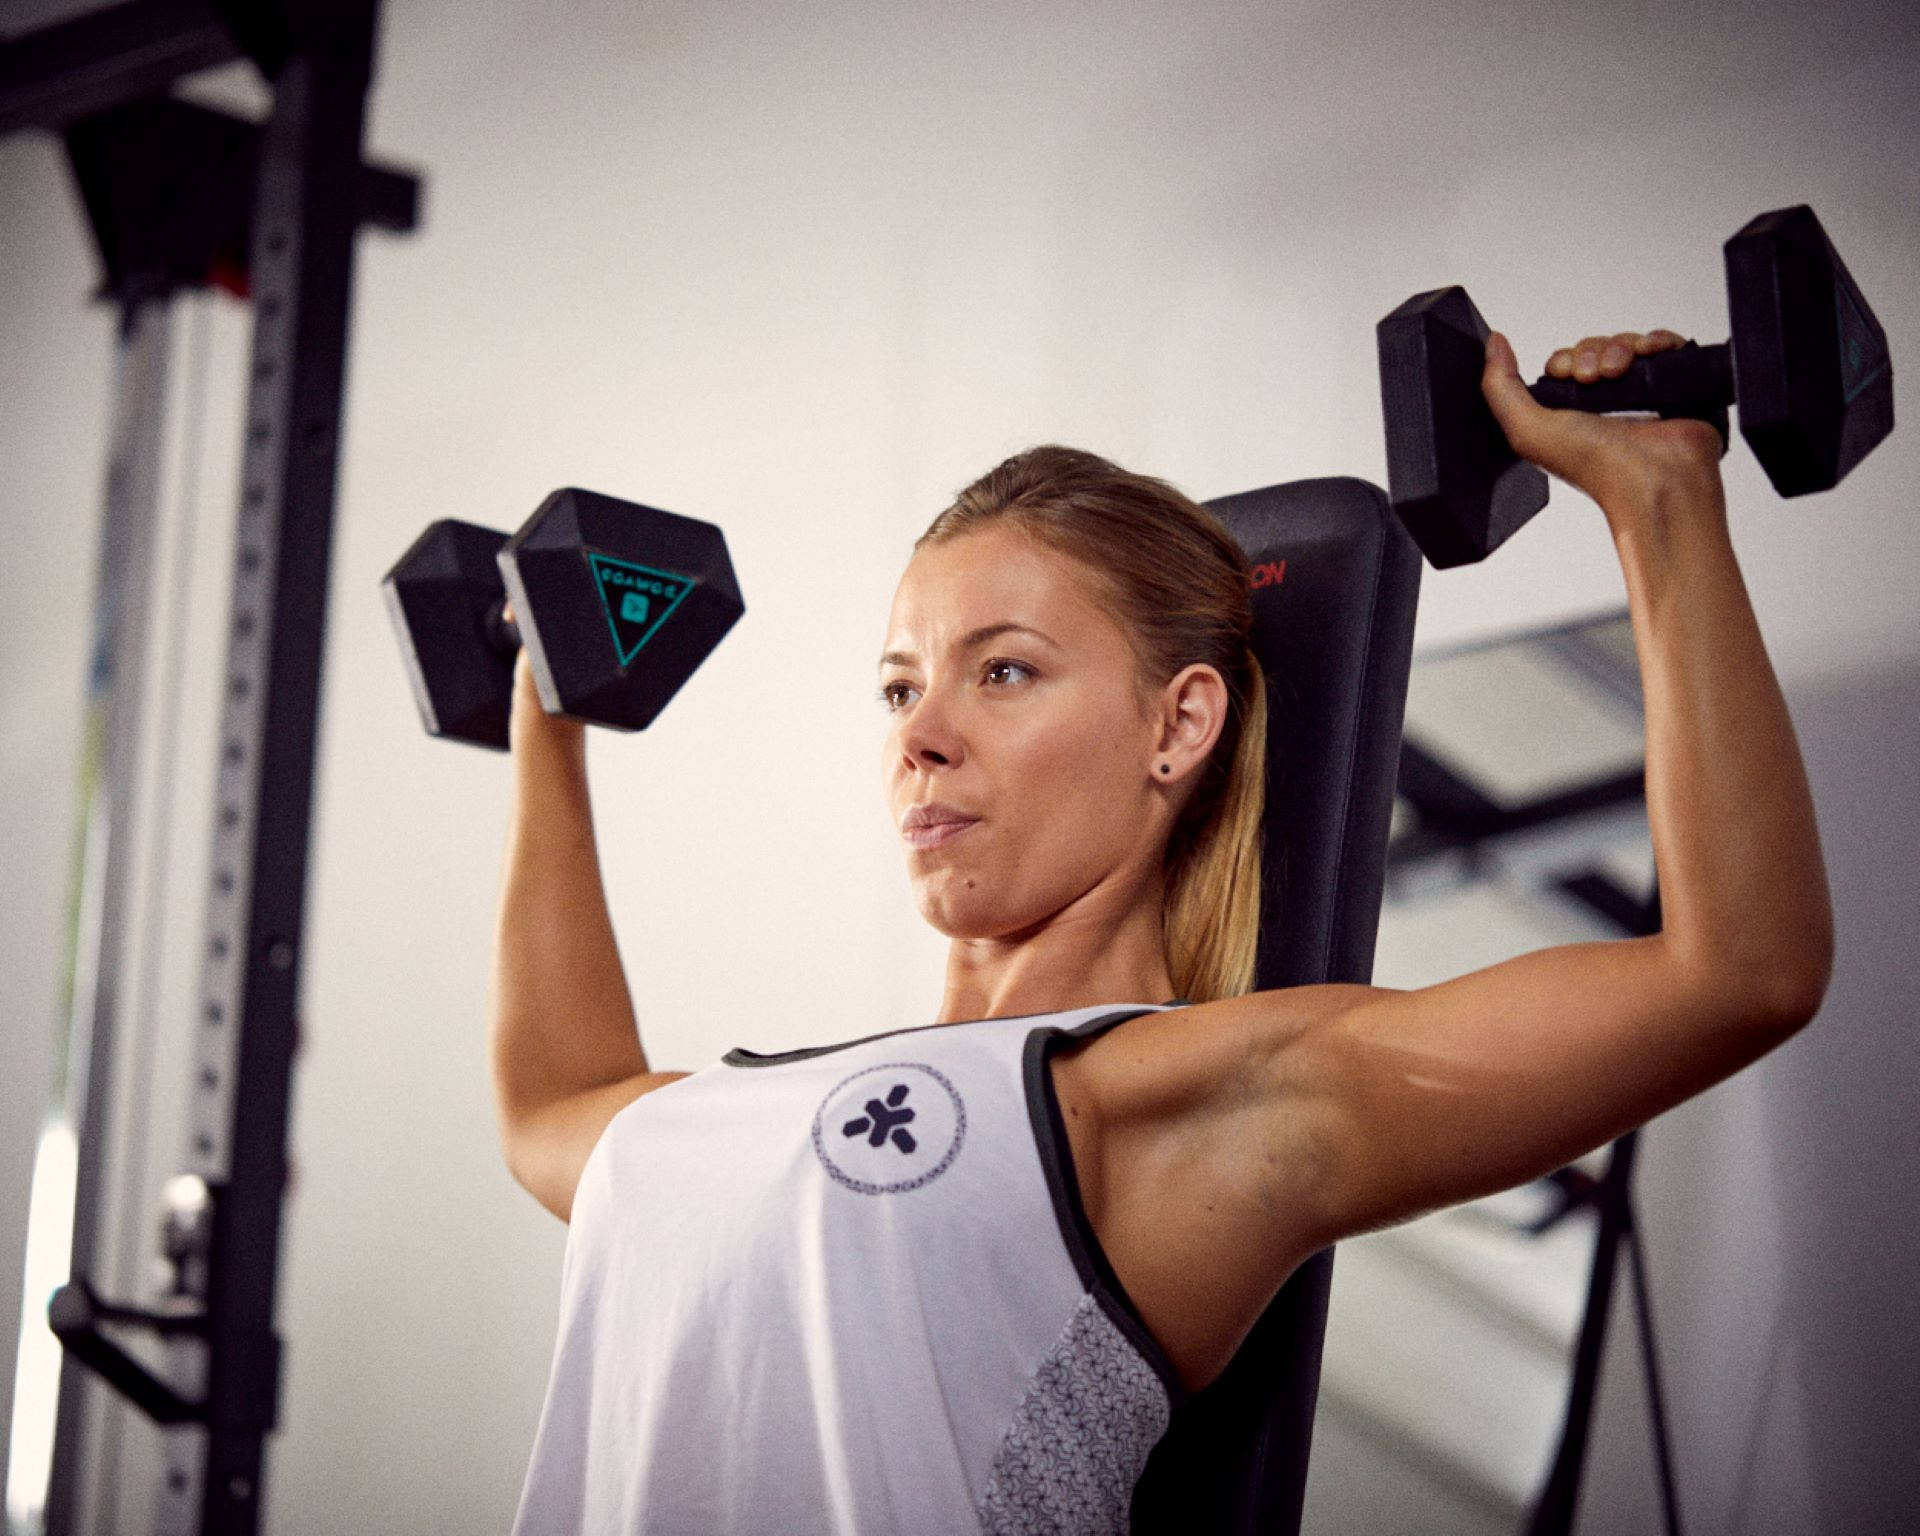 6 Exercises With A Weight Bench